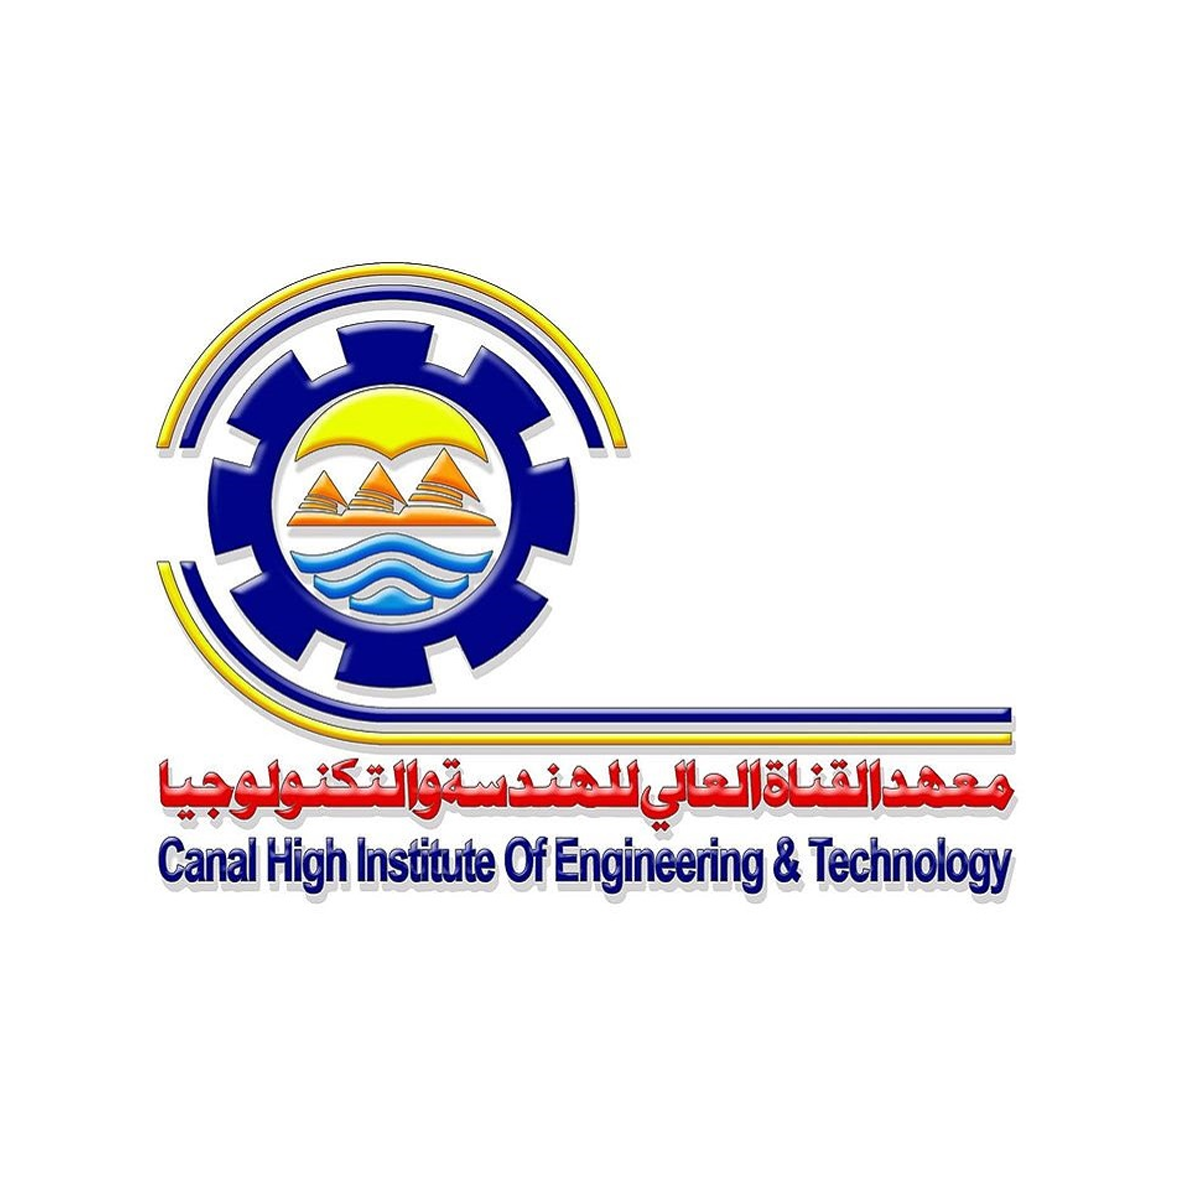 The Higher Canal Institute of Engineering and Technology - Suez